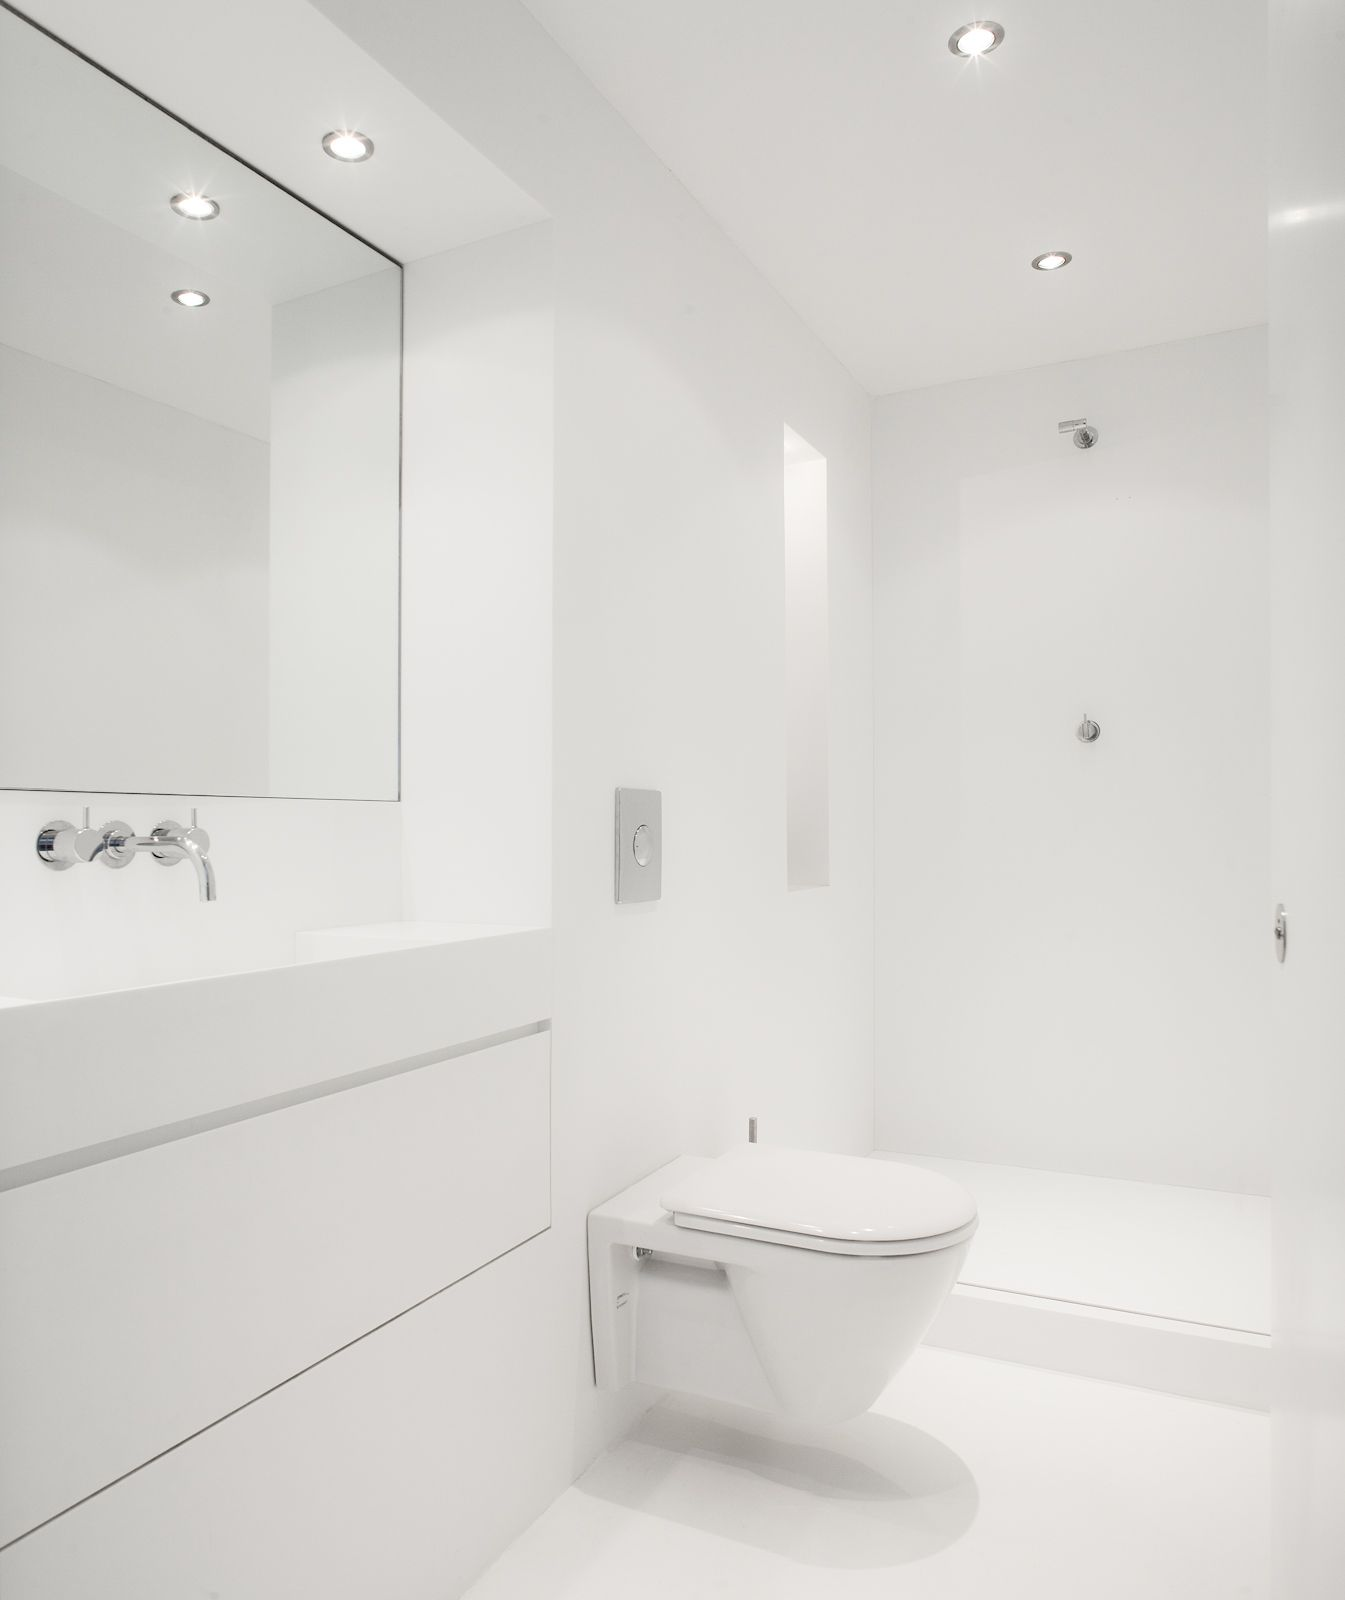 Corian of Hi-macs naadloze badkamer | White Bathrooms | Pinterest ...